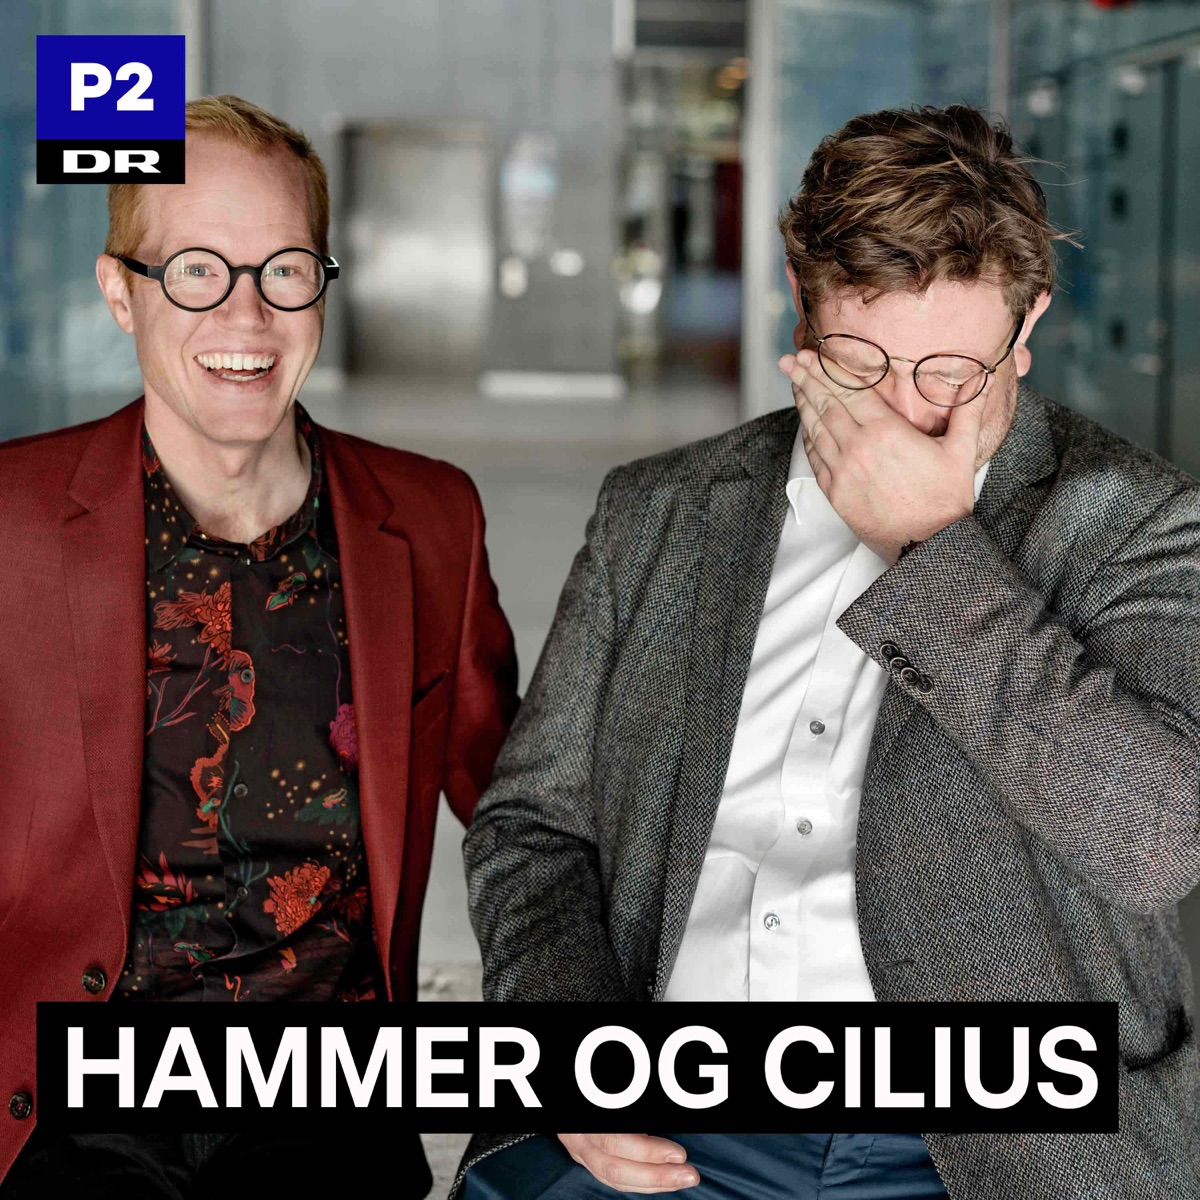 Hammer og Cilius - Ond, ondere, ondest - podcast - 13. aug 2020